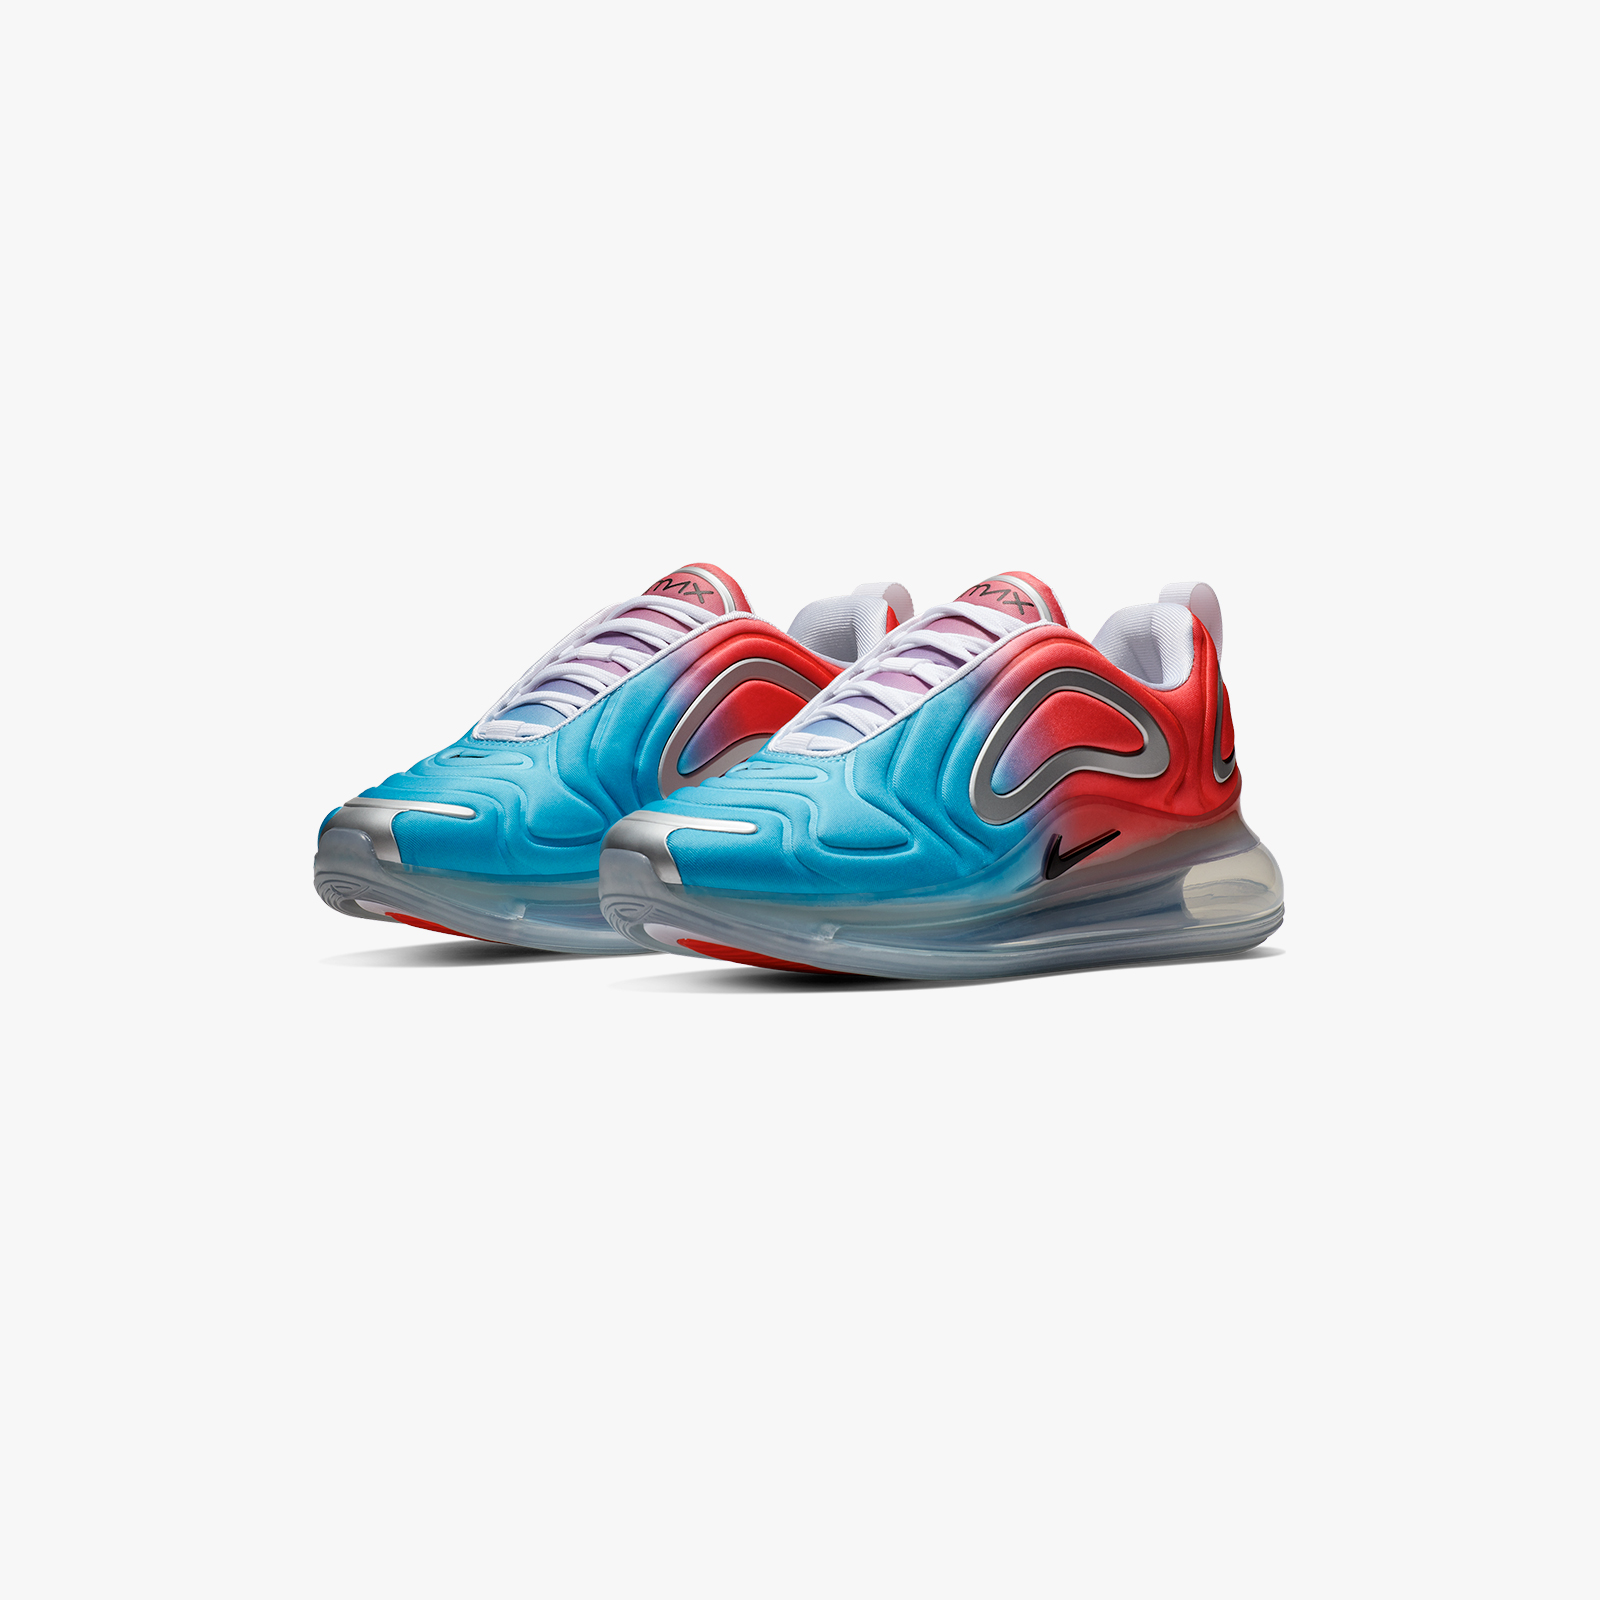 Athletic Shoes Clothing Shoes Accessories Nike W Air Max 720 Women S Size 6 Ar9293 600 Airmax Lava Glow Blue Fury New Myself Co Ls